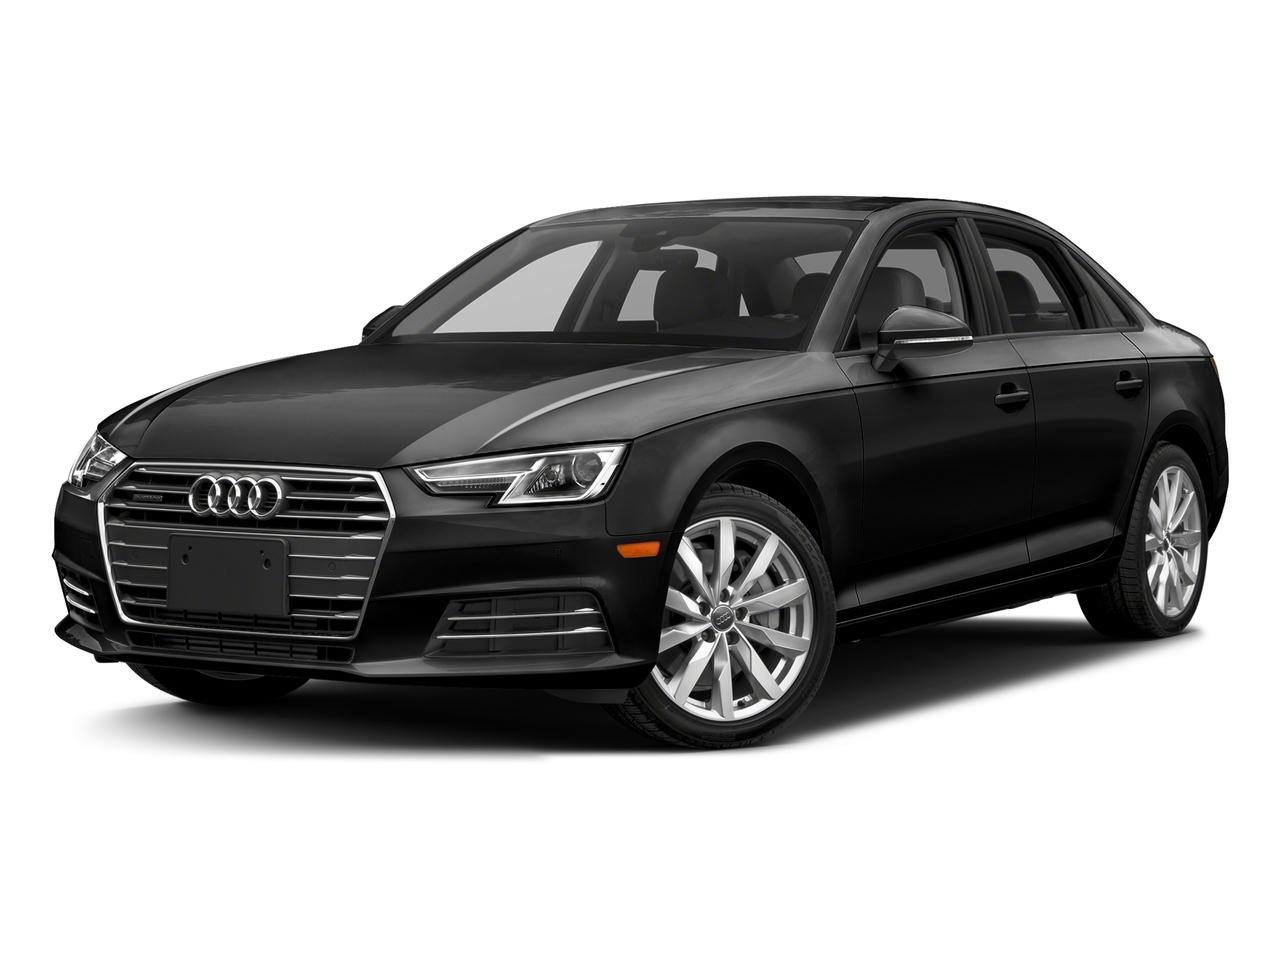 2018 Audi A4 Vehicle Photo in Concord, NC 28027